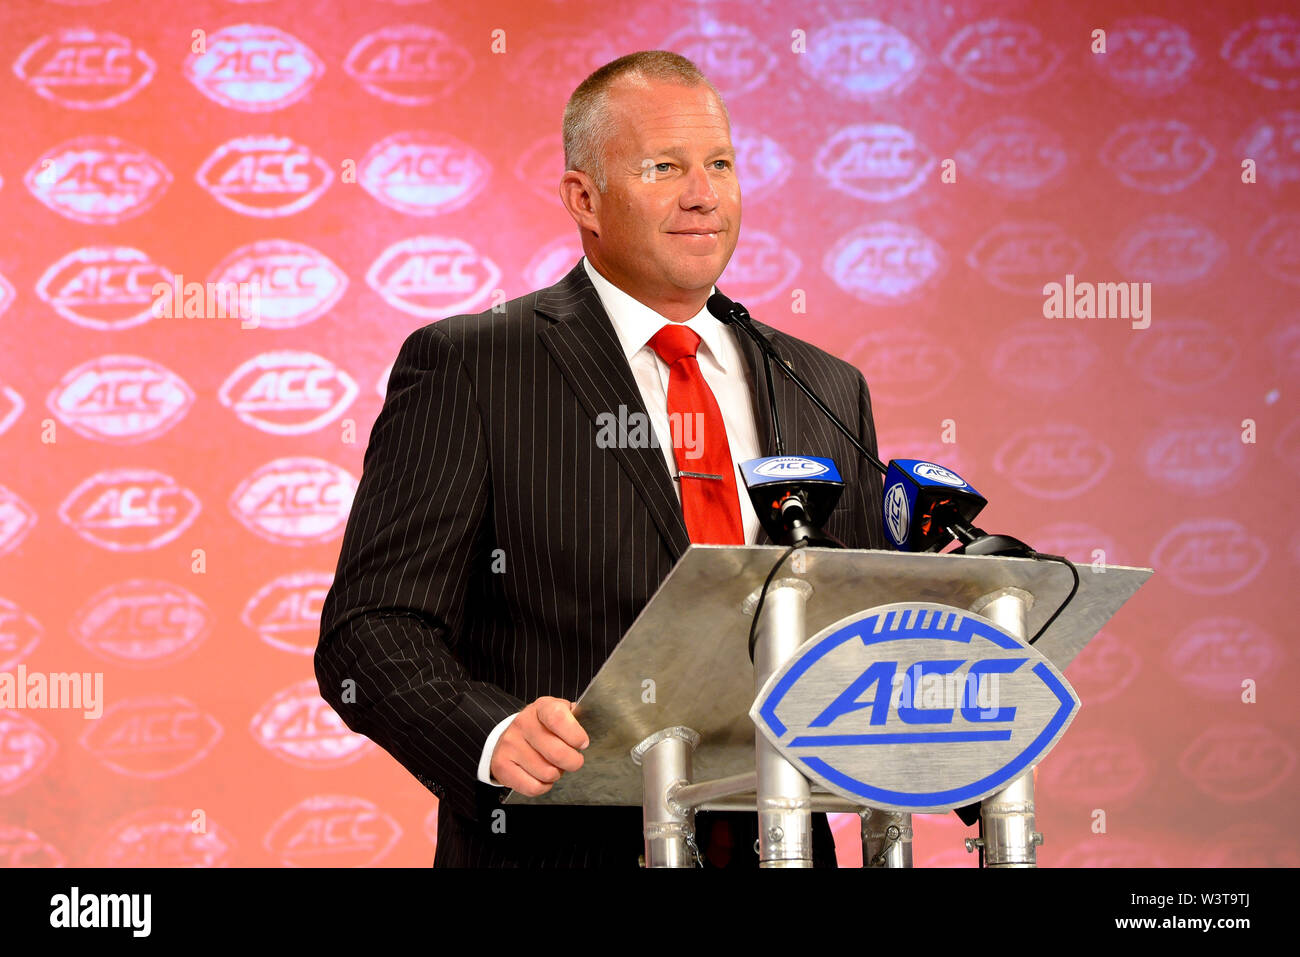 Charlotte, North Carolina, USA. 17th July, 2019. NC State Head Coach DAVE DOEREN speaking to reporters during the ACC Atlantic Division Coach/Student interviews on July 17, 2019 at the Westin Hotels & Resorts in Charlotte, N.C. Credit: Ed Clemente/ZUMA Wire/Alamy Live News - Stock Image